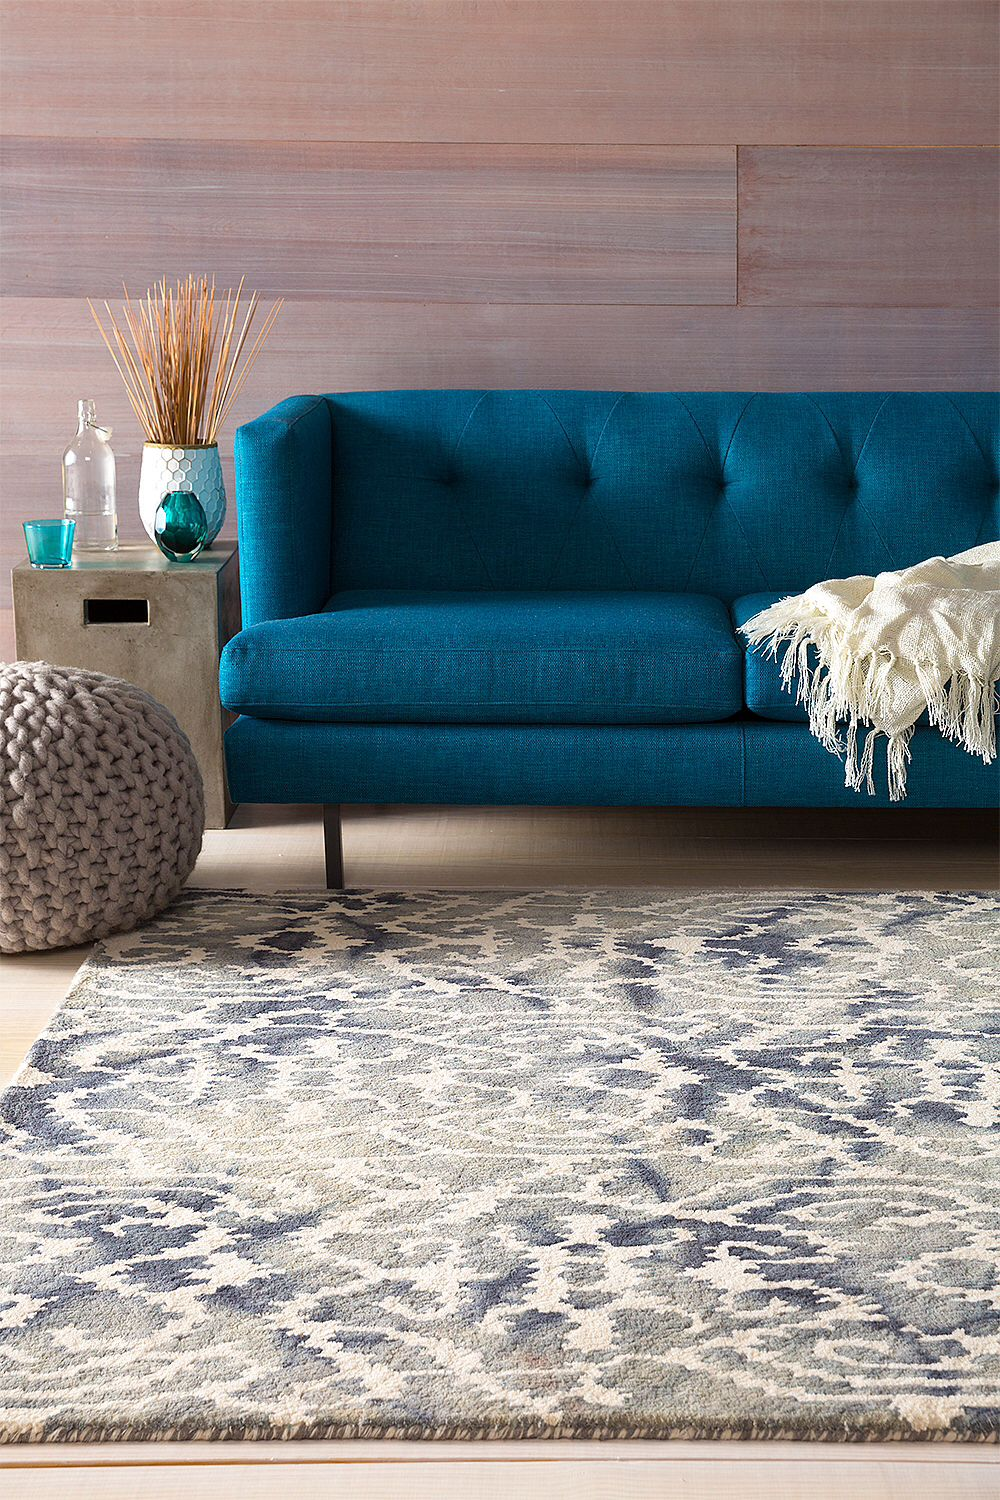 High Quality So Many Colorful, Beautiful Rugs By Surya. Available @condofurniture.com  #smallerspaces